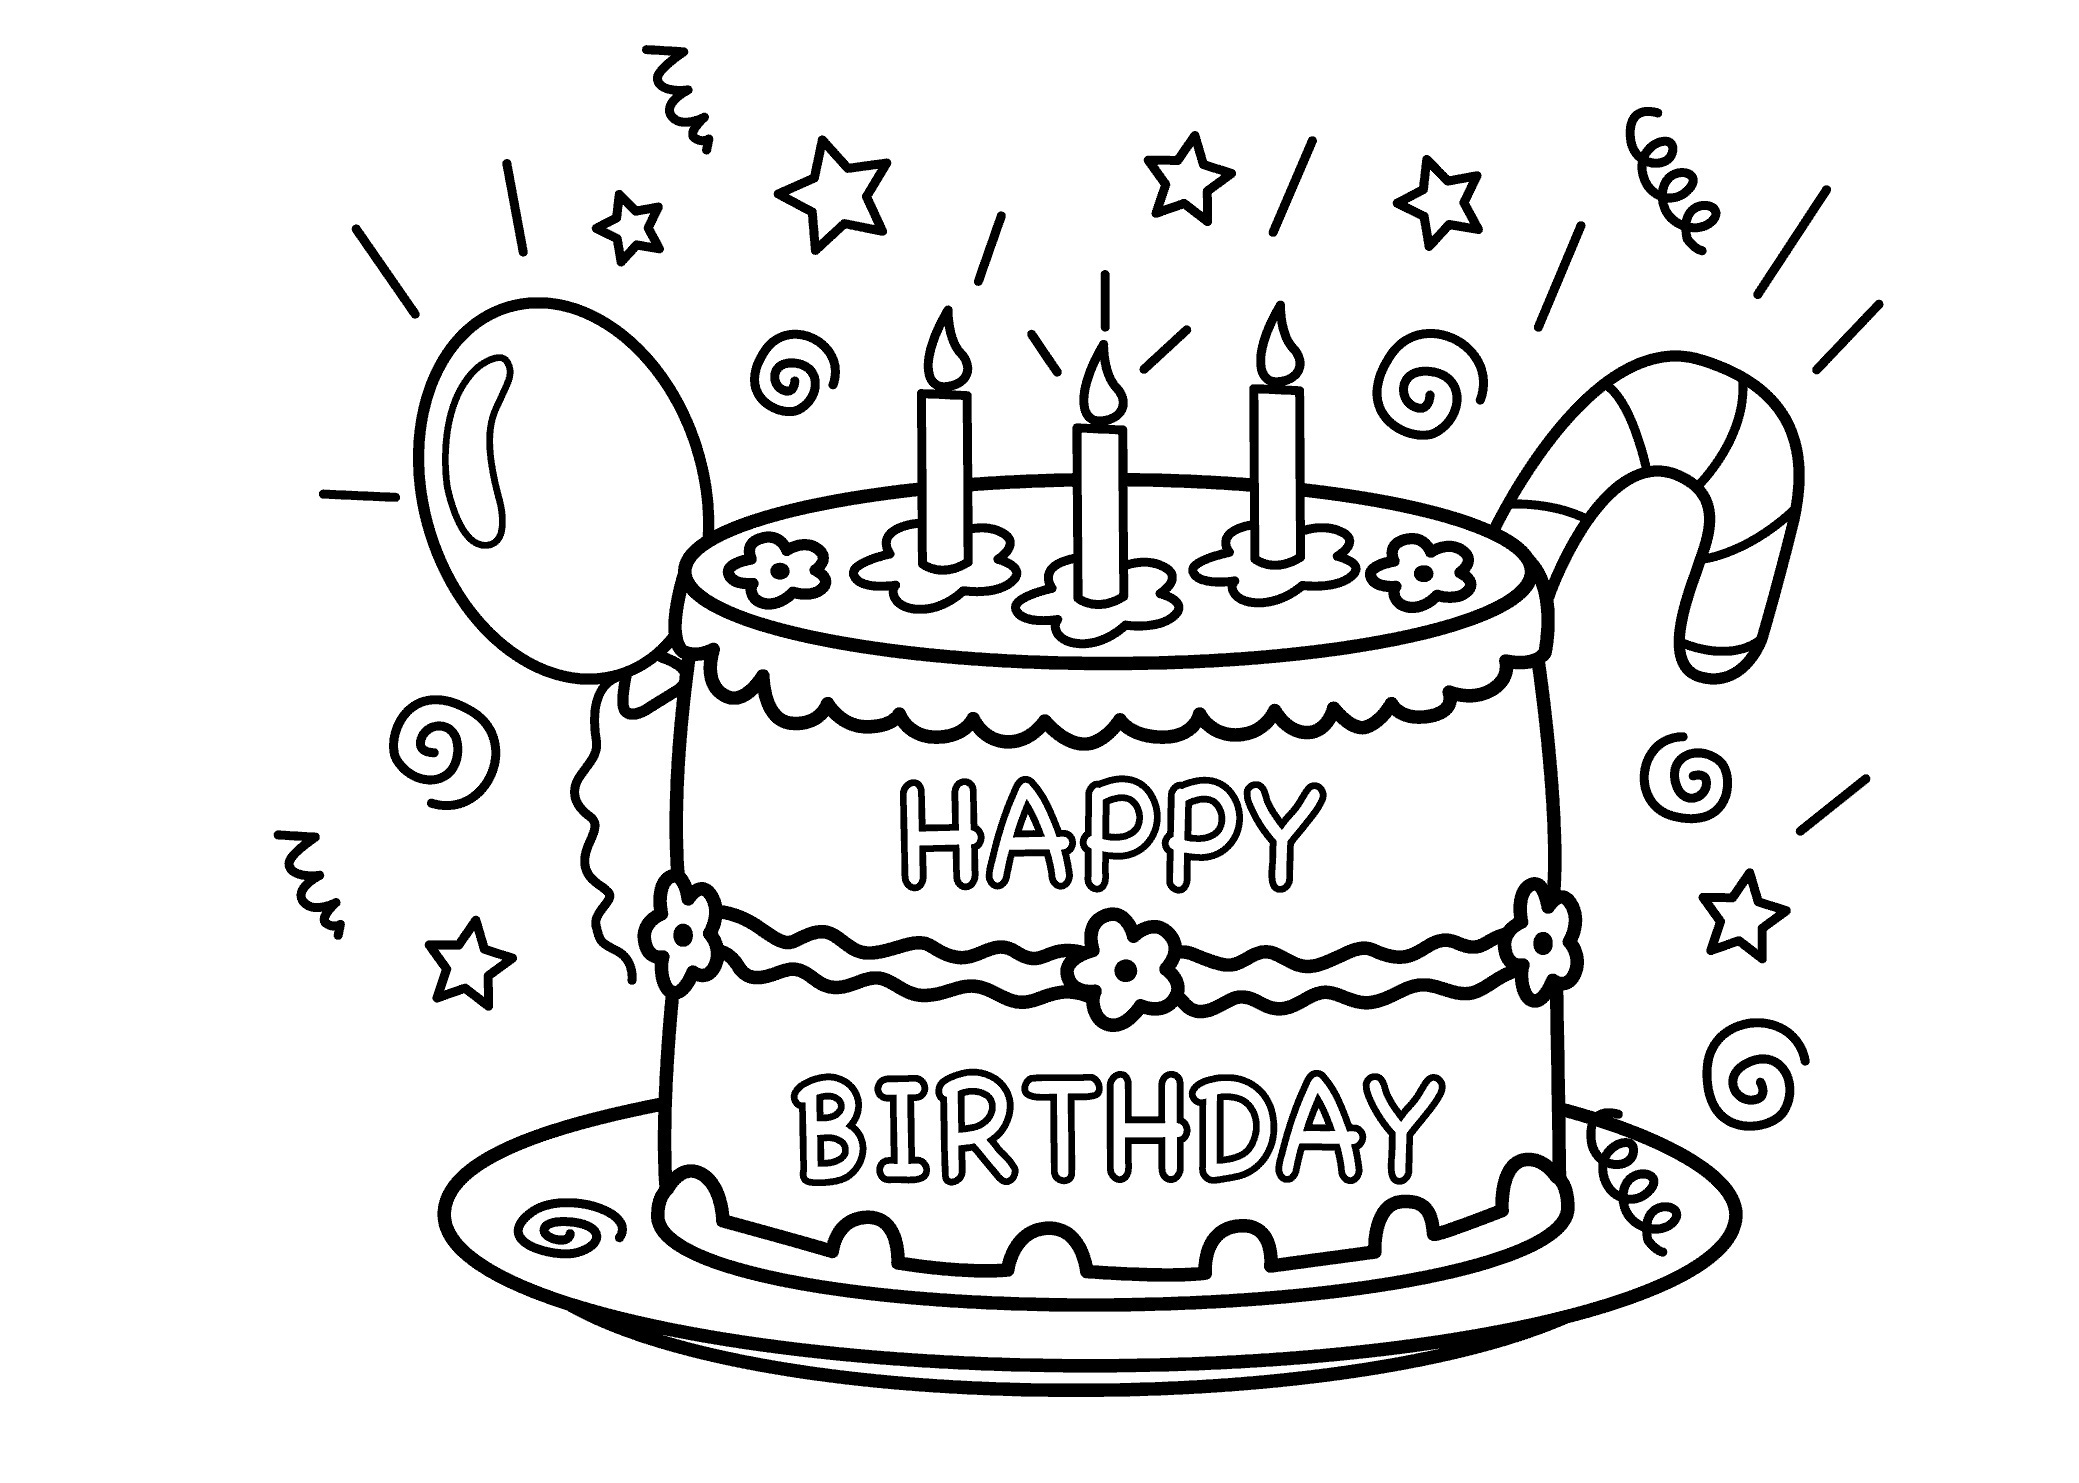 Stupendous Free Printable Birthday Cake Coloring Pages For Kids Funny Birthday Cards Online Overcheapnameinfo